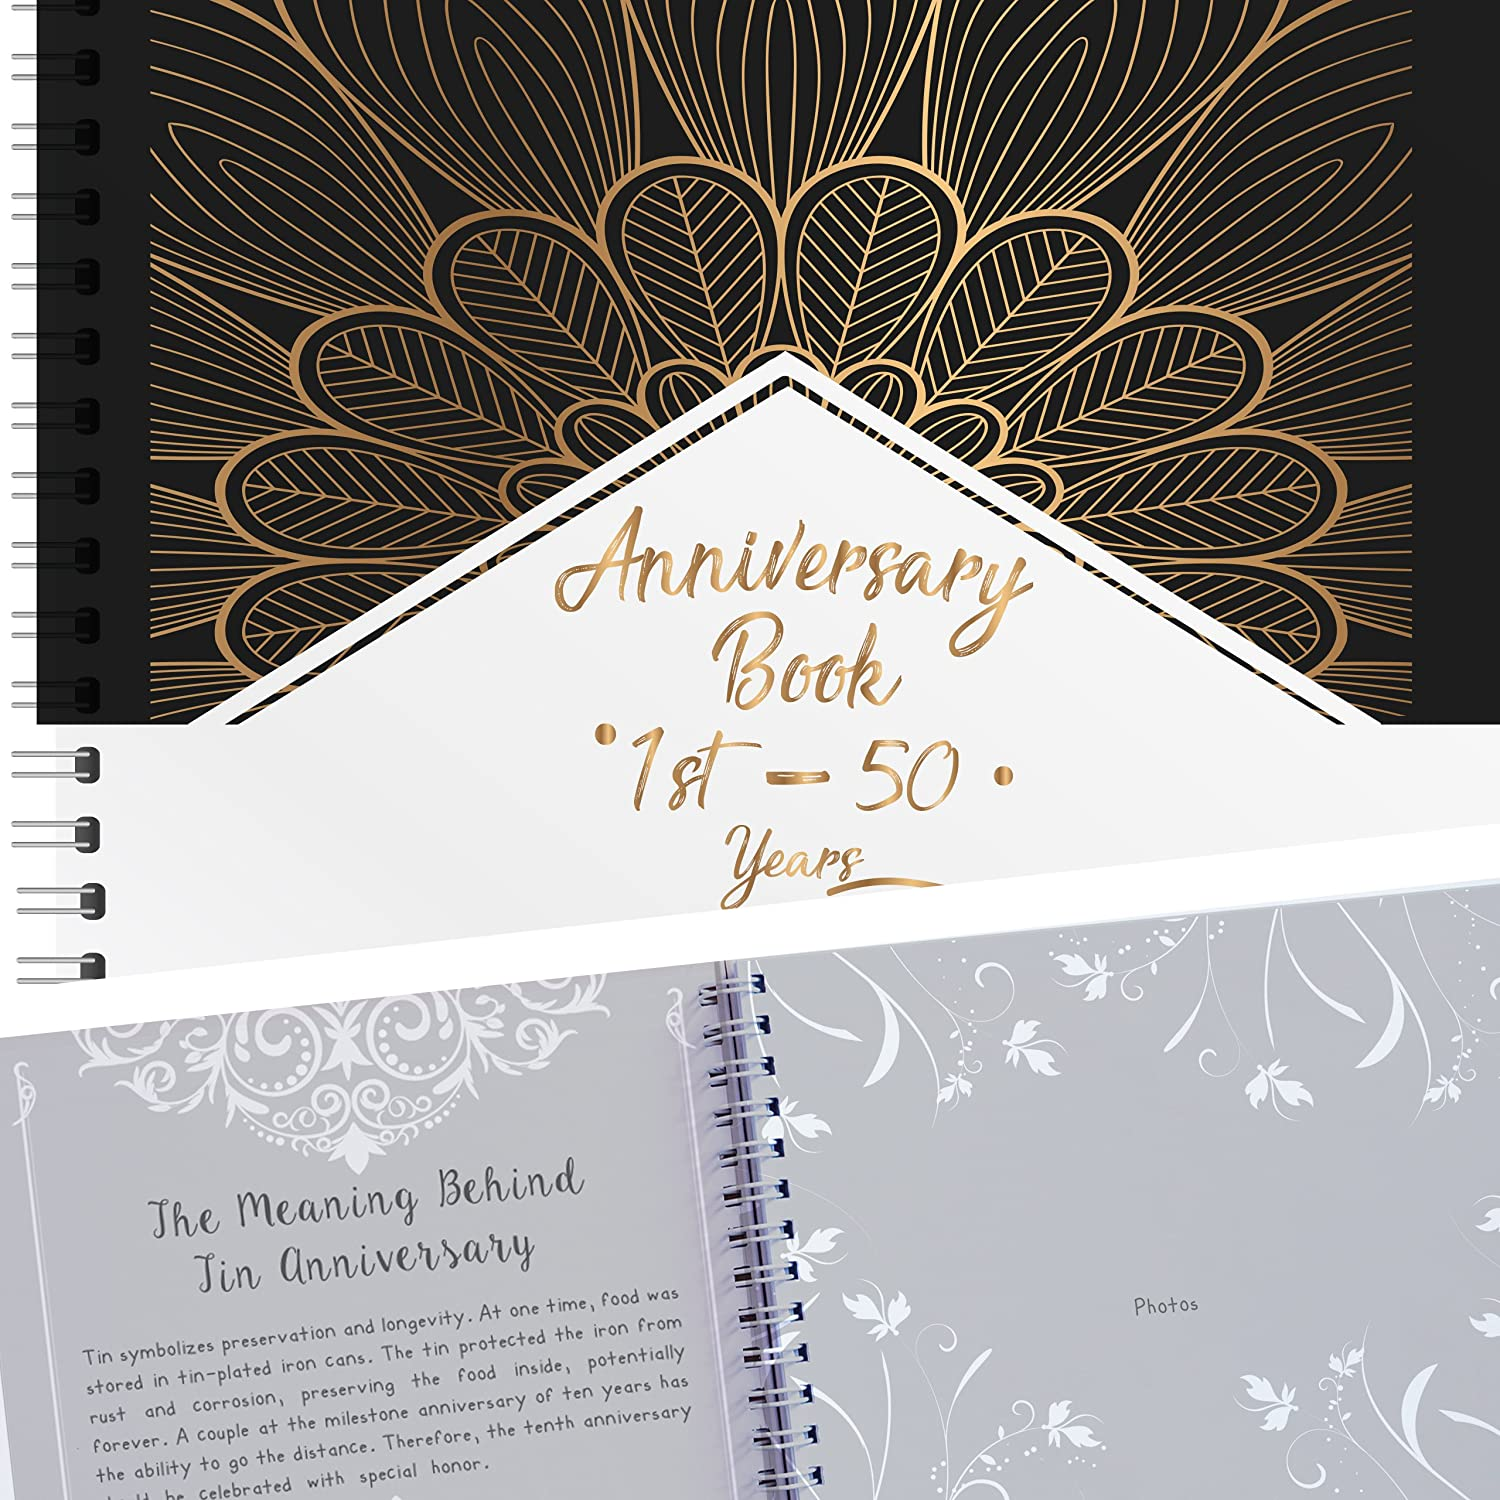 Anniversary Book - A Hardcover Wedding Memory Album To Document Wedding Anniversaries From The 1st To 50th Year! Unique Couple Gifts For Him & Her - Personalized Marriage Presents For Husband & Wife Unconditional Rosie ANNIVERSARYBOOKB